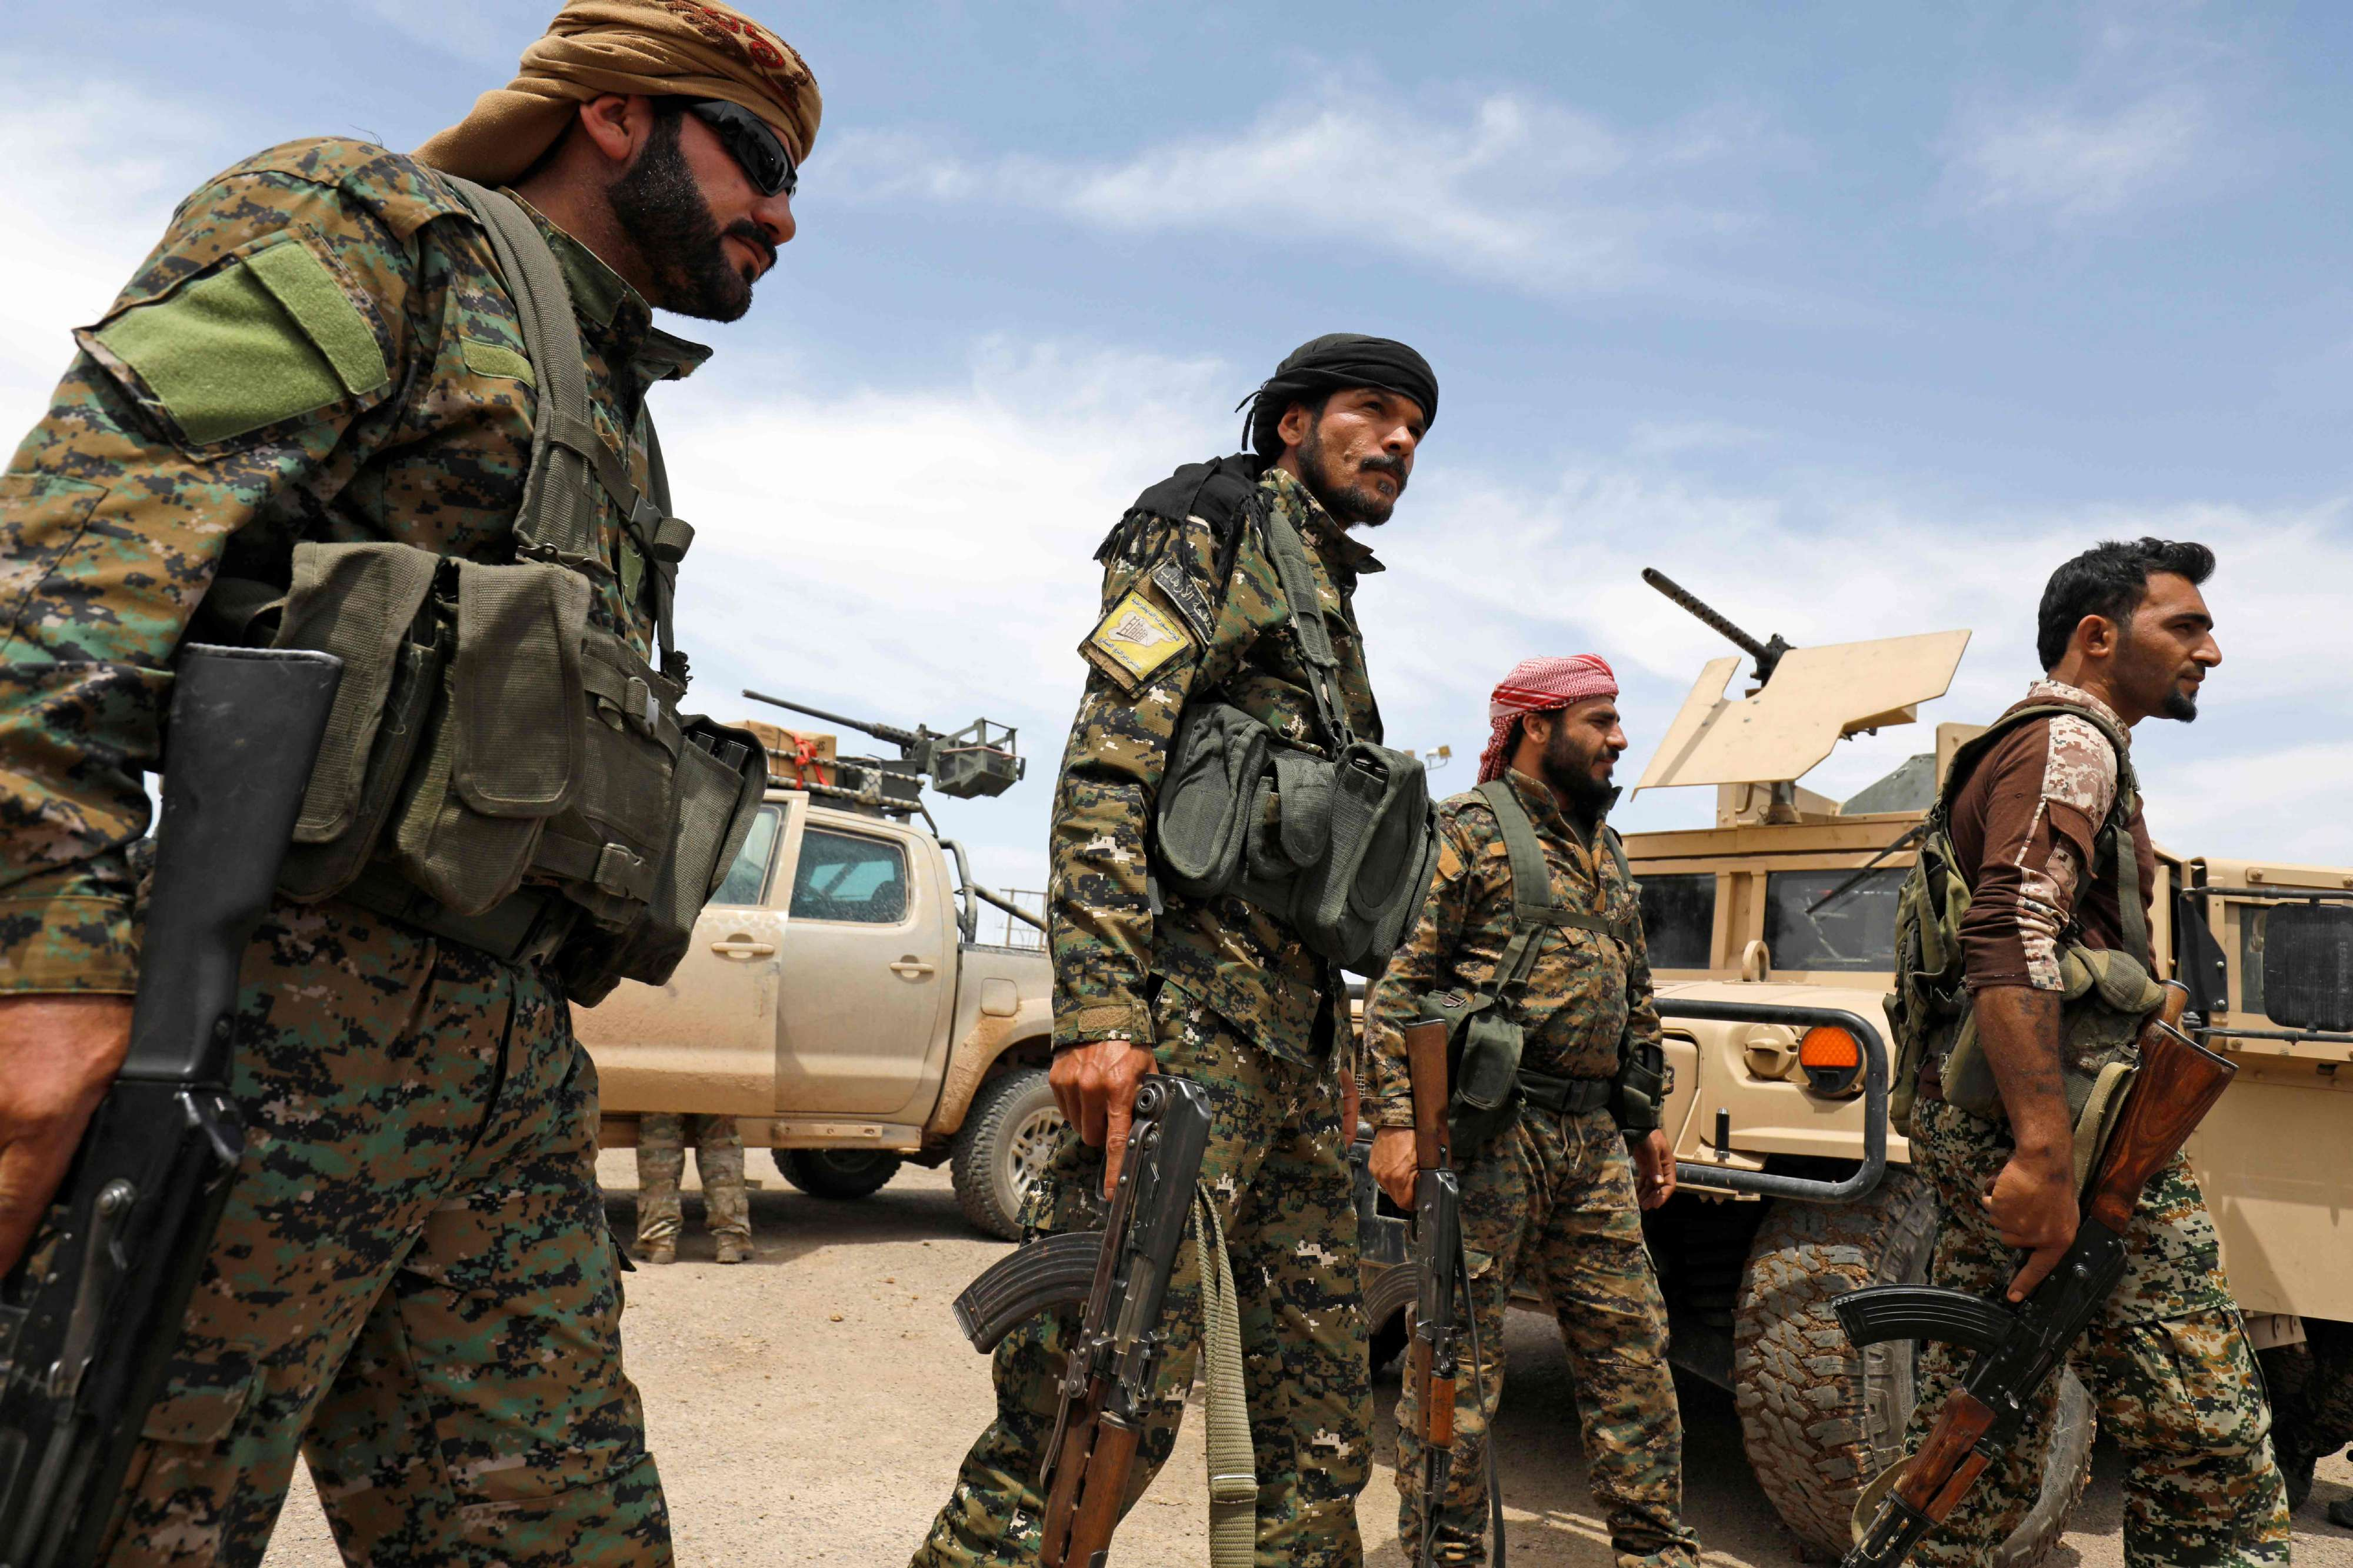 Members of the Syrian Democratic Forces (SDF) gather at the al-Tanak oil field as they prepare to relaunch a military campaign against Islamic State militants, near Abu Kamal, province of Deir Ezzor, in eastern Syria, on May 1. (AFP)